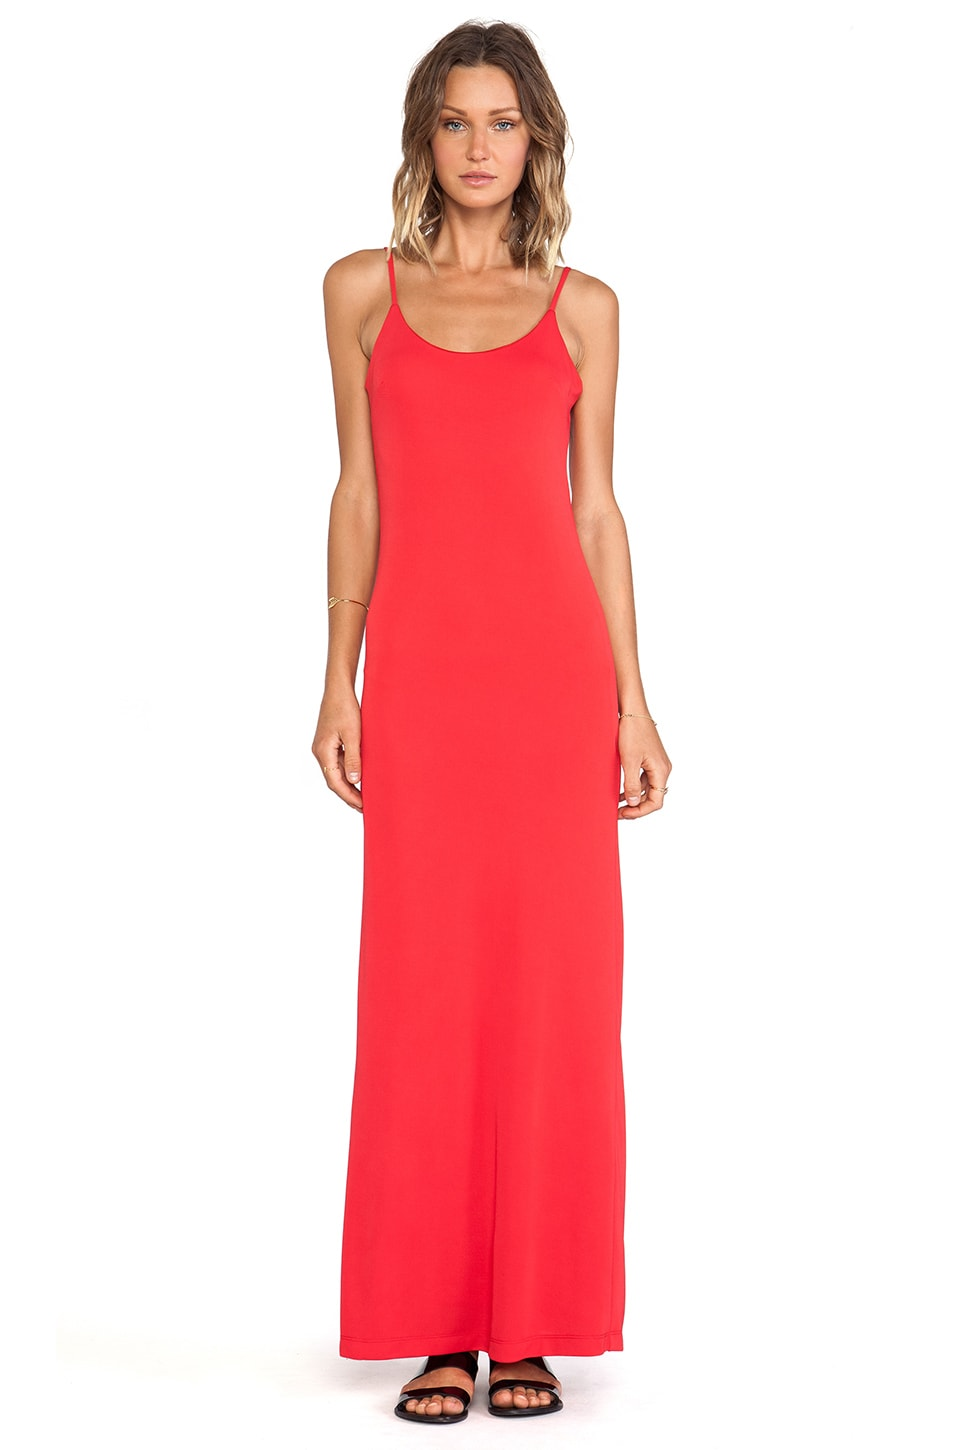 Bobi BLACK Tank Maxi Dress in Red